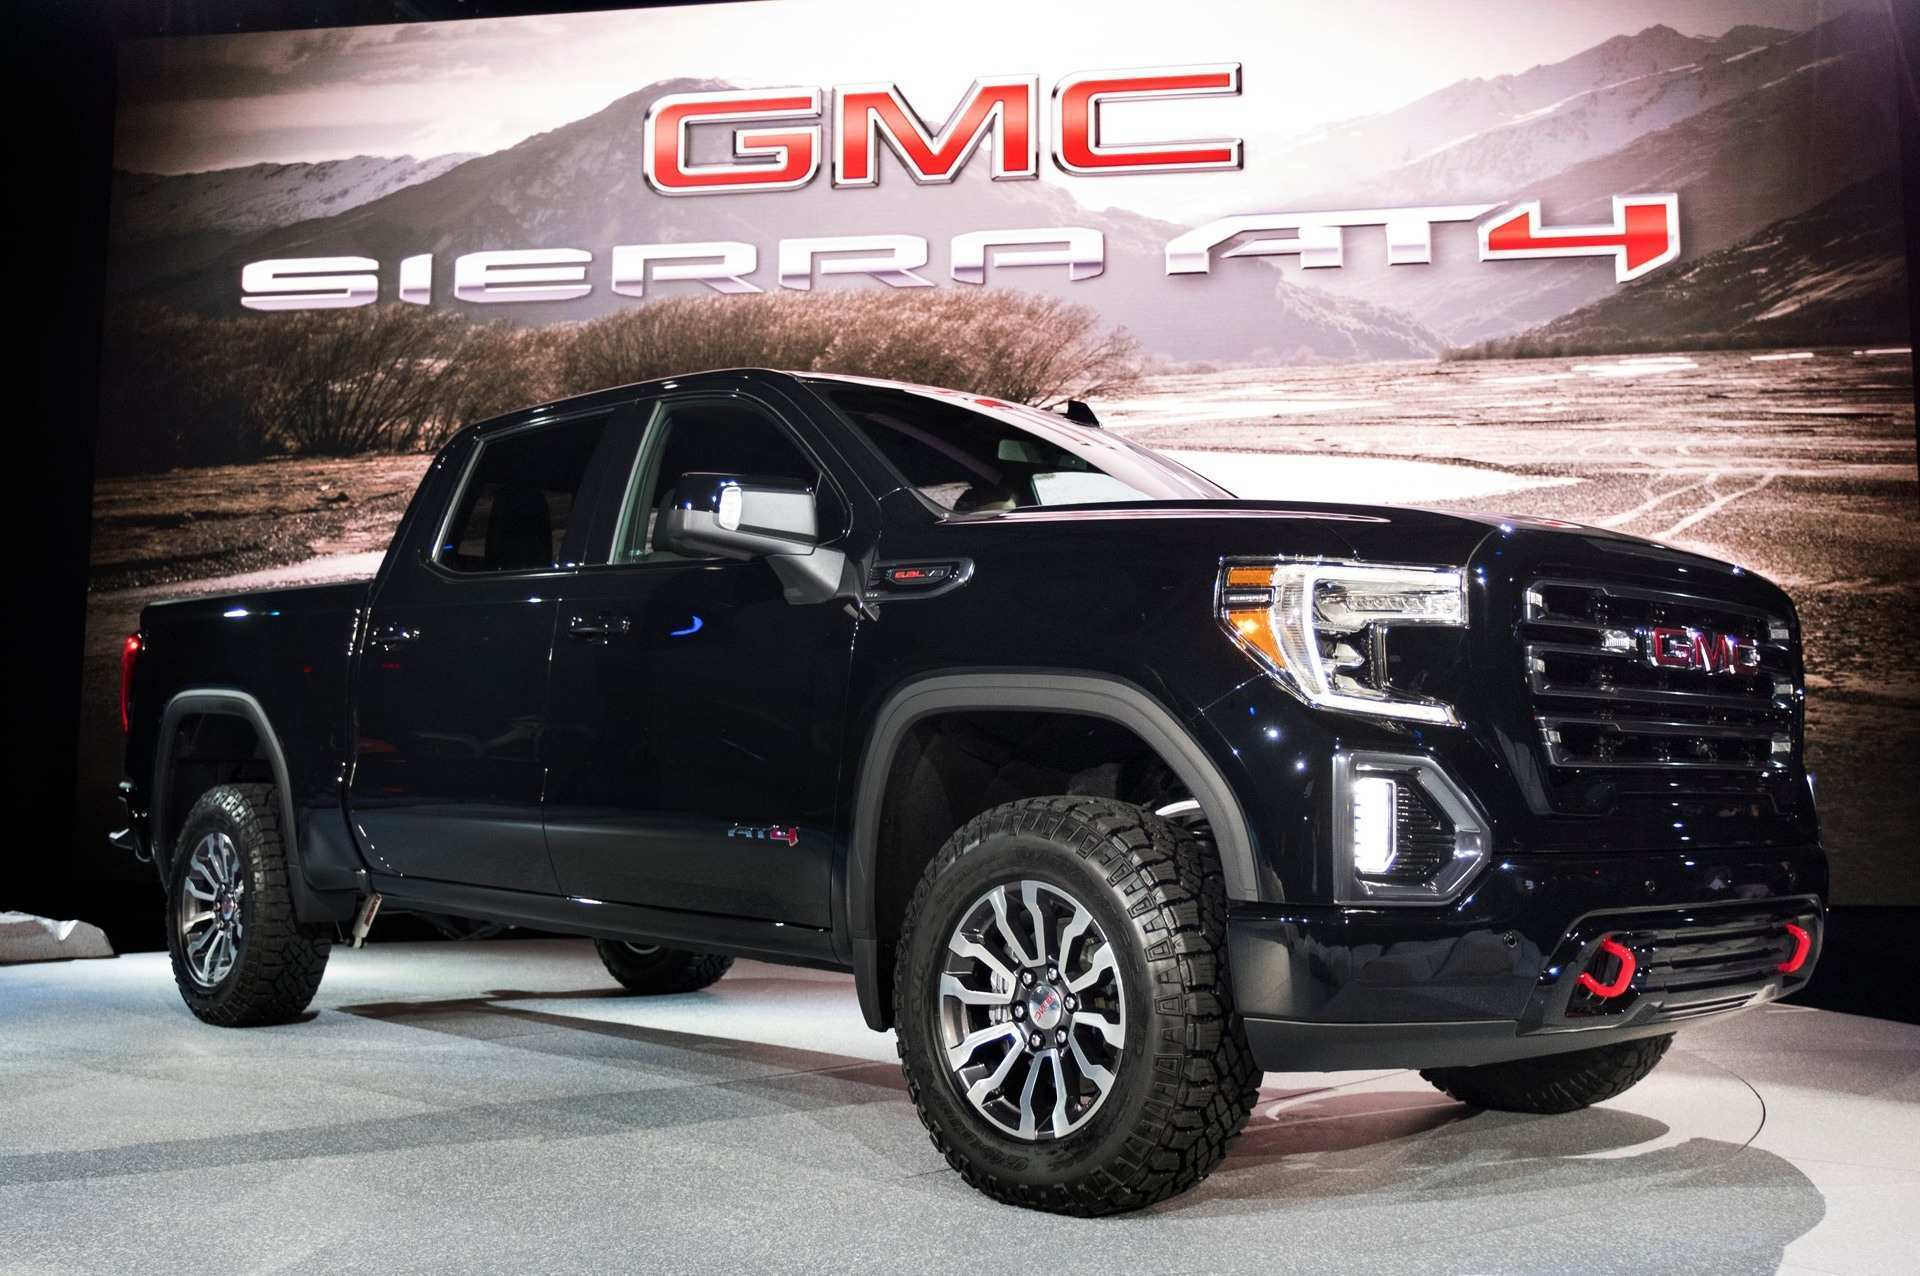 45 The Best Gmc Regular Cab 2019 Specs Research New by Best Gmc Regular Cab 2019 Specs